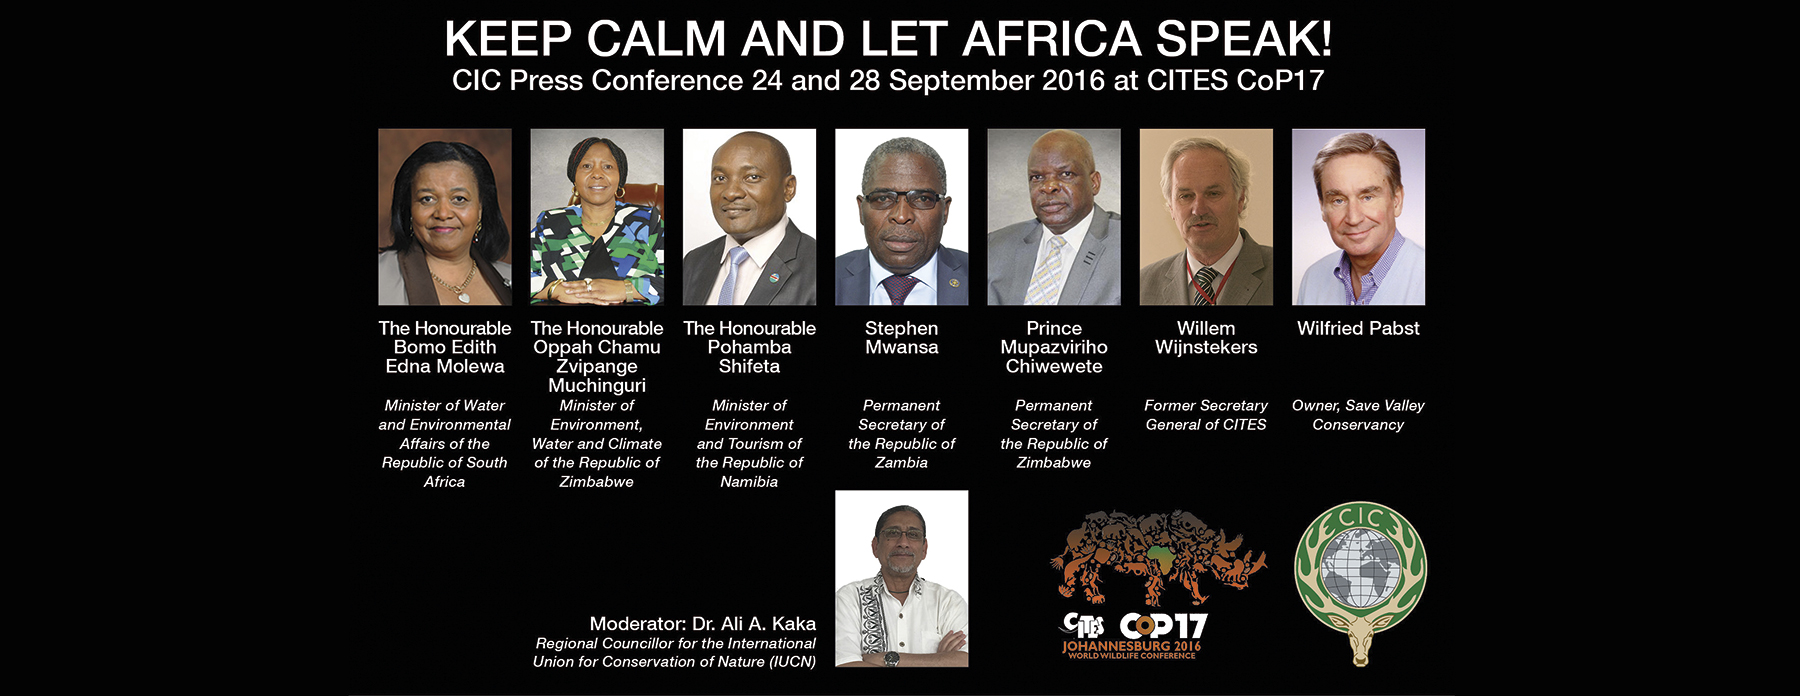 CITES: Keep Calm And Let Africa Speak <br> November 2016, Volume 14-4&5